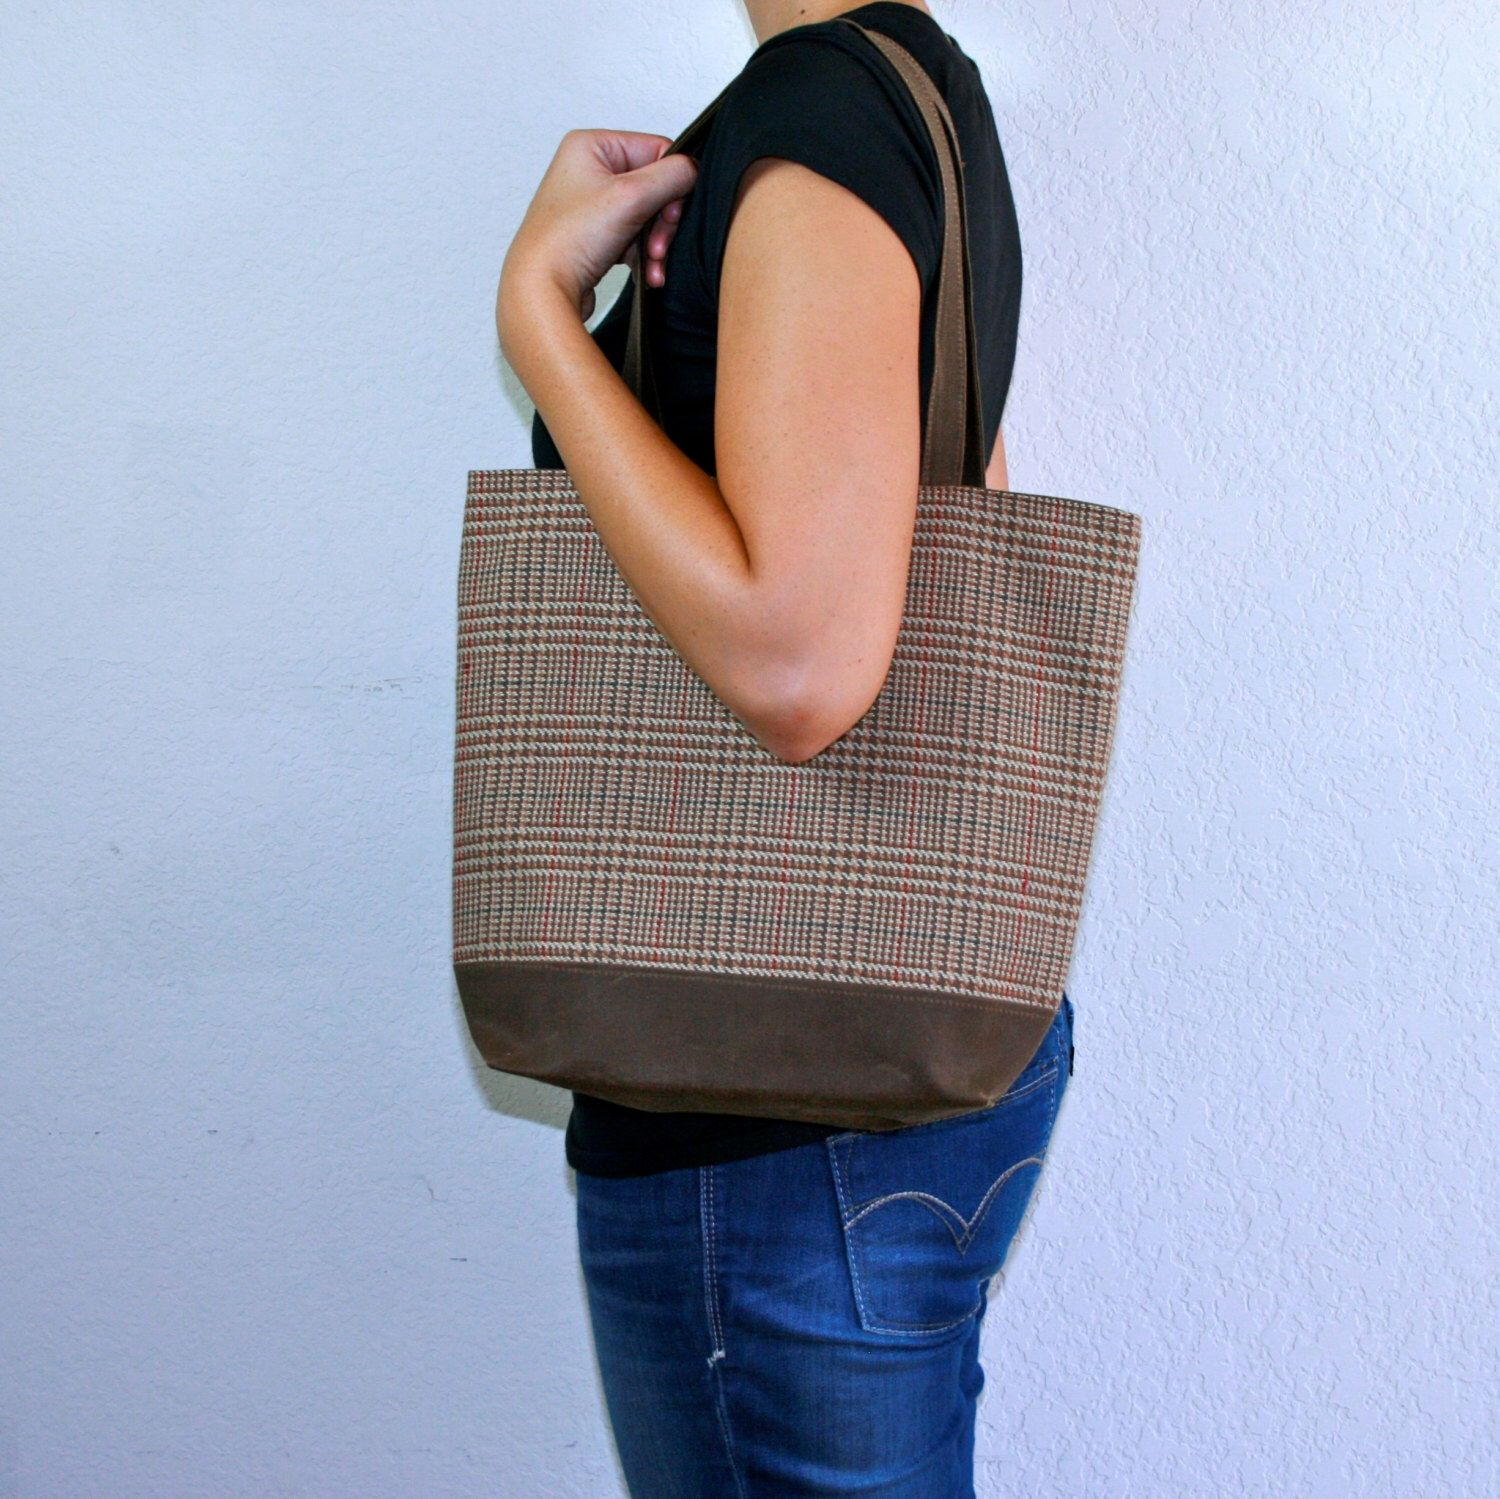 Waxed Canvas Tote Bag Brown and Plaid by truliegifted on Etsy https://www.etsy.com/listing/167794842/waxed-canvas-tote-bag-brown-and-plaid